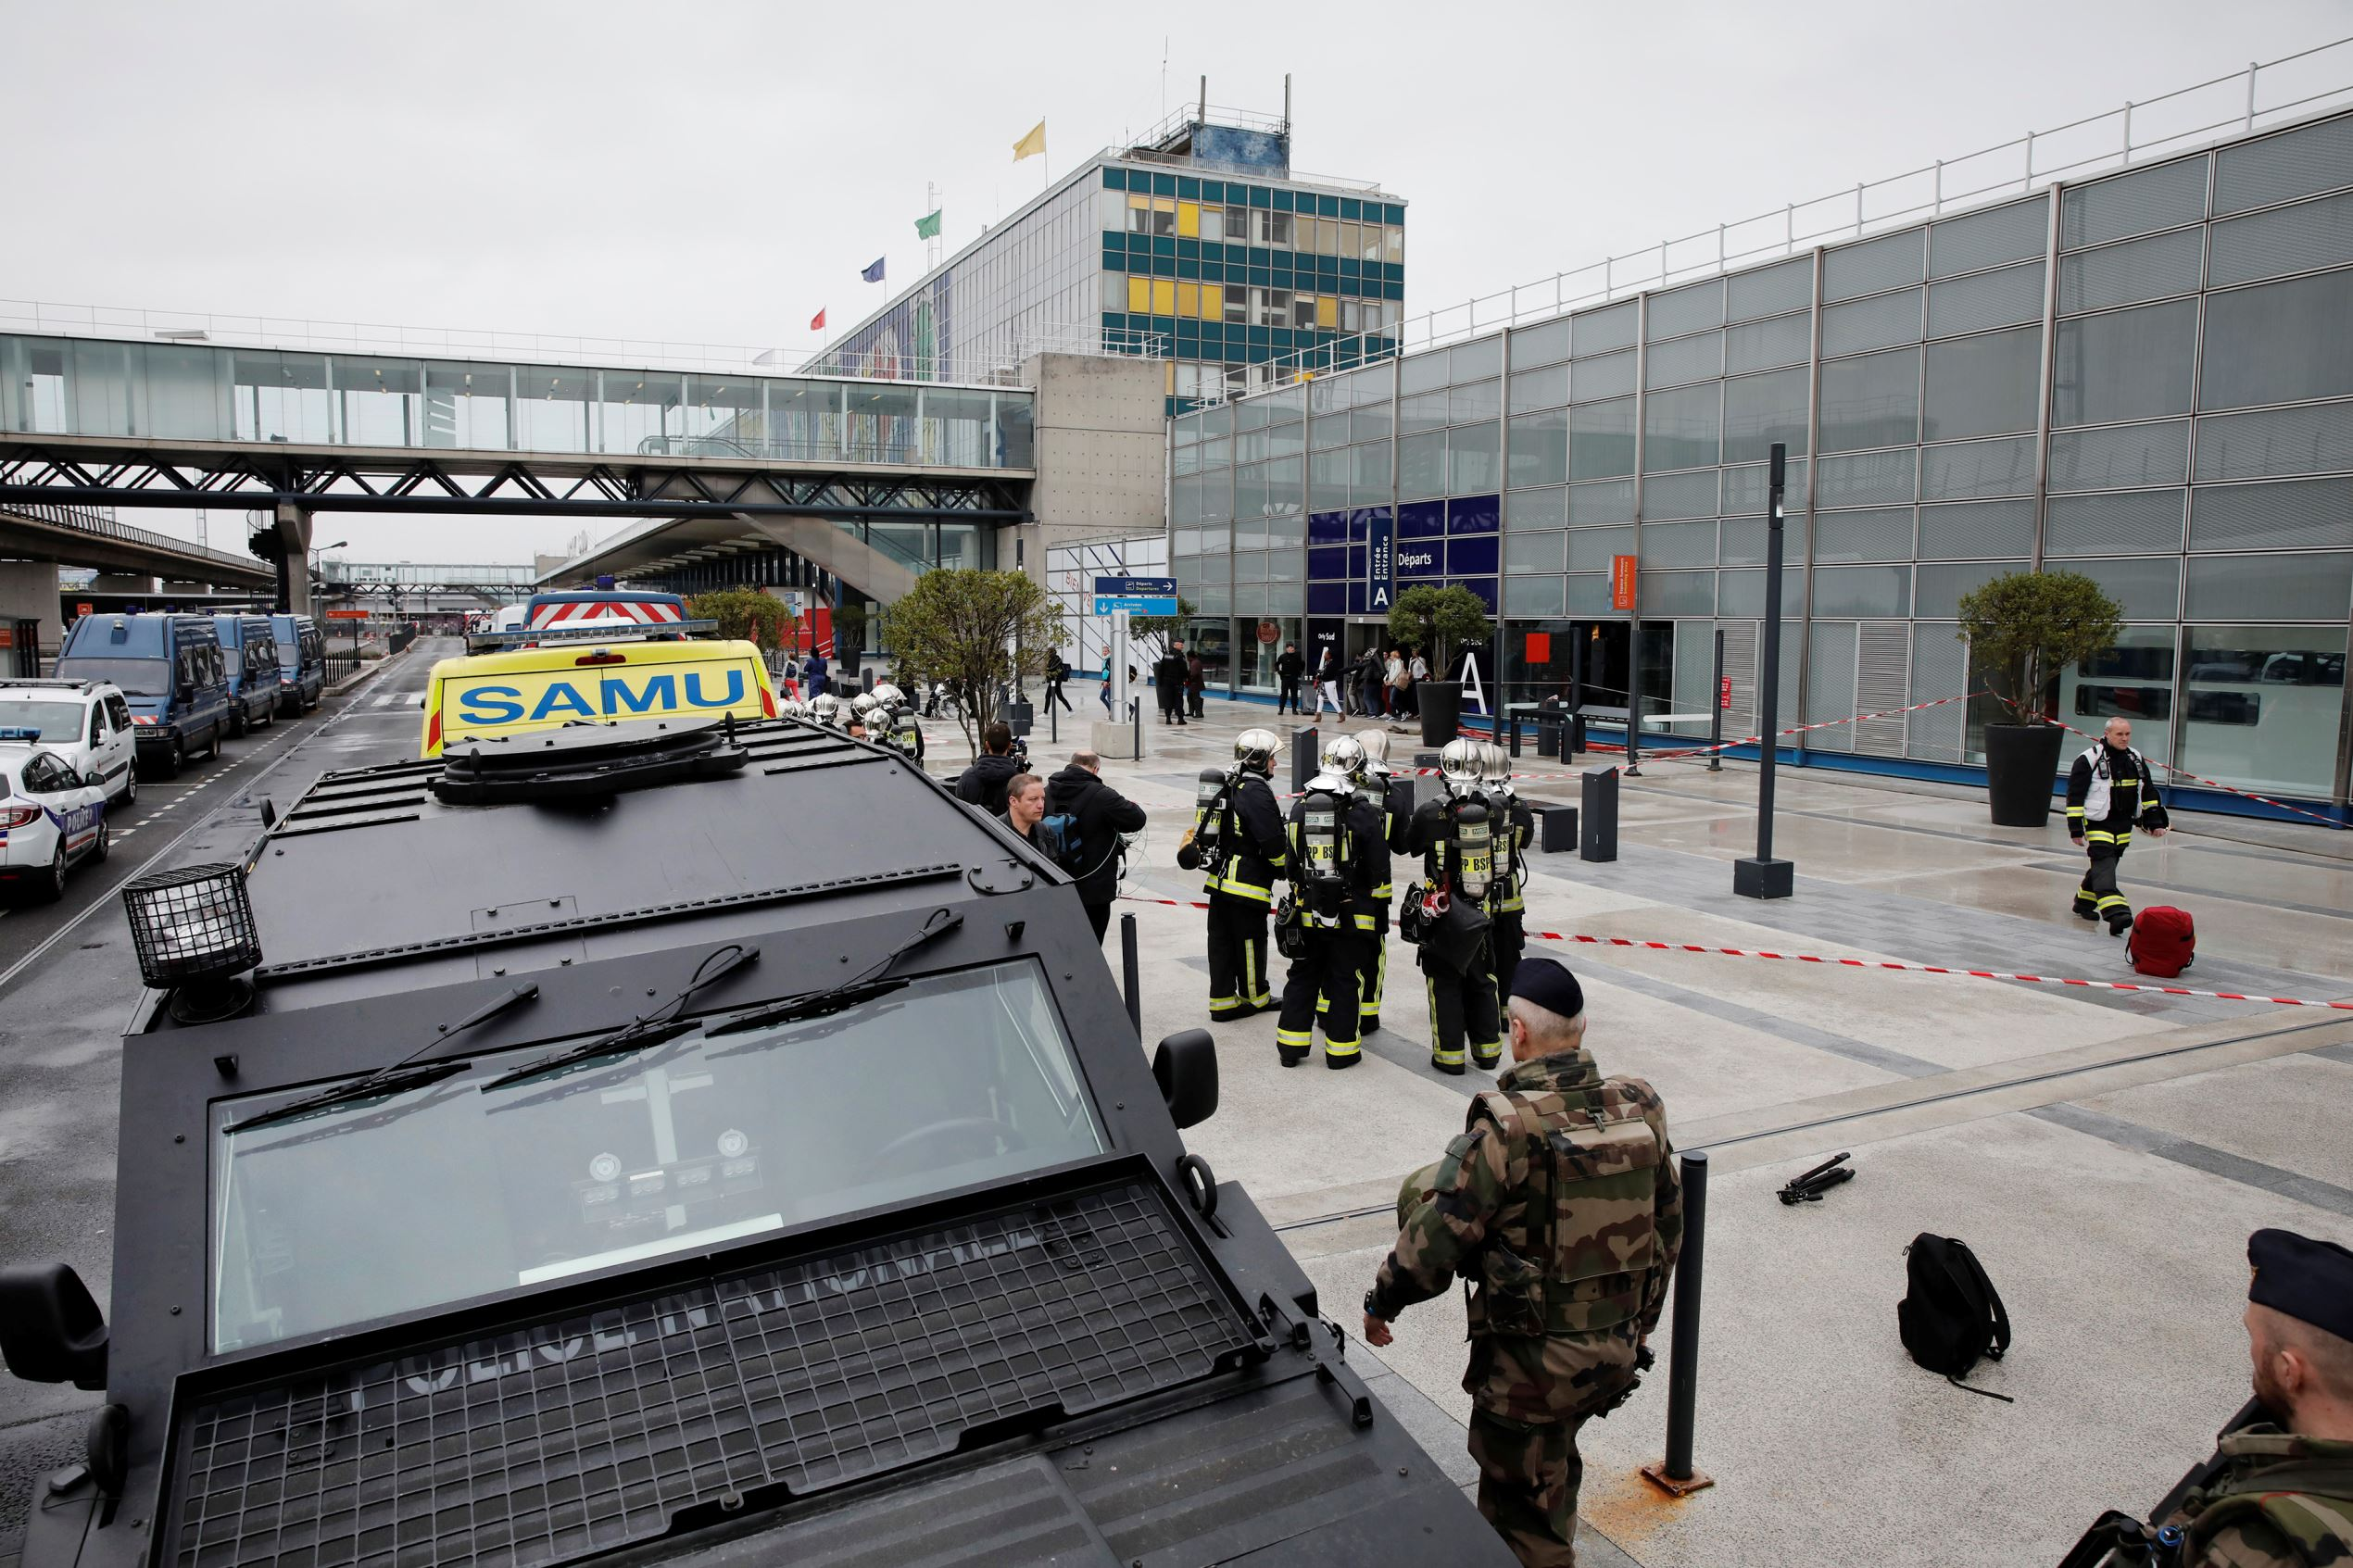 Slide 1 of 14: Military and emergency services outside Orly airport southern terminal after a shooting incident near Paris, France March 18, 2017.